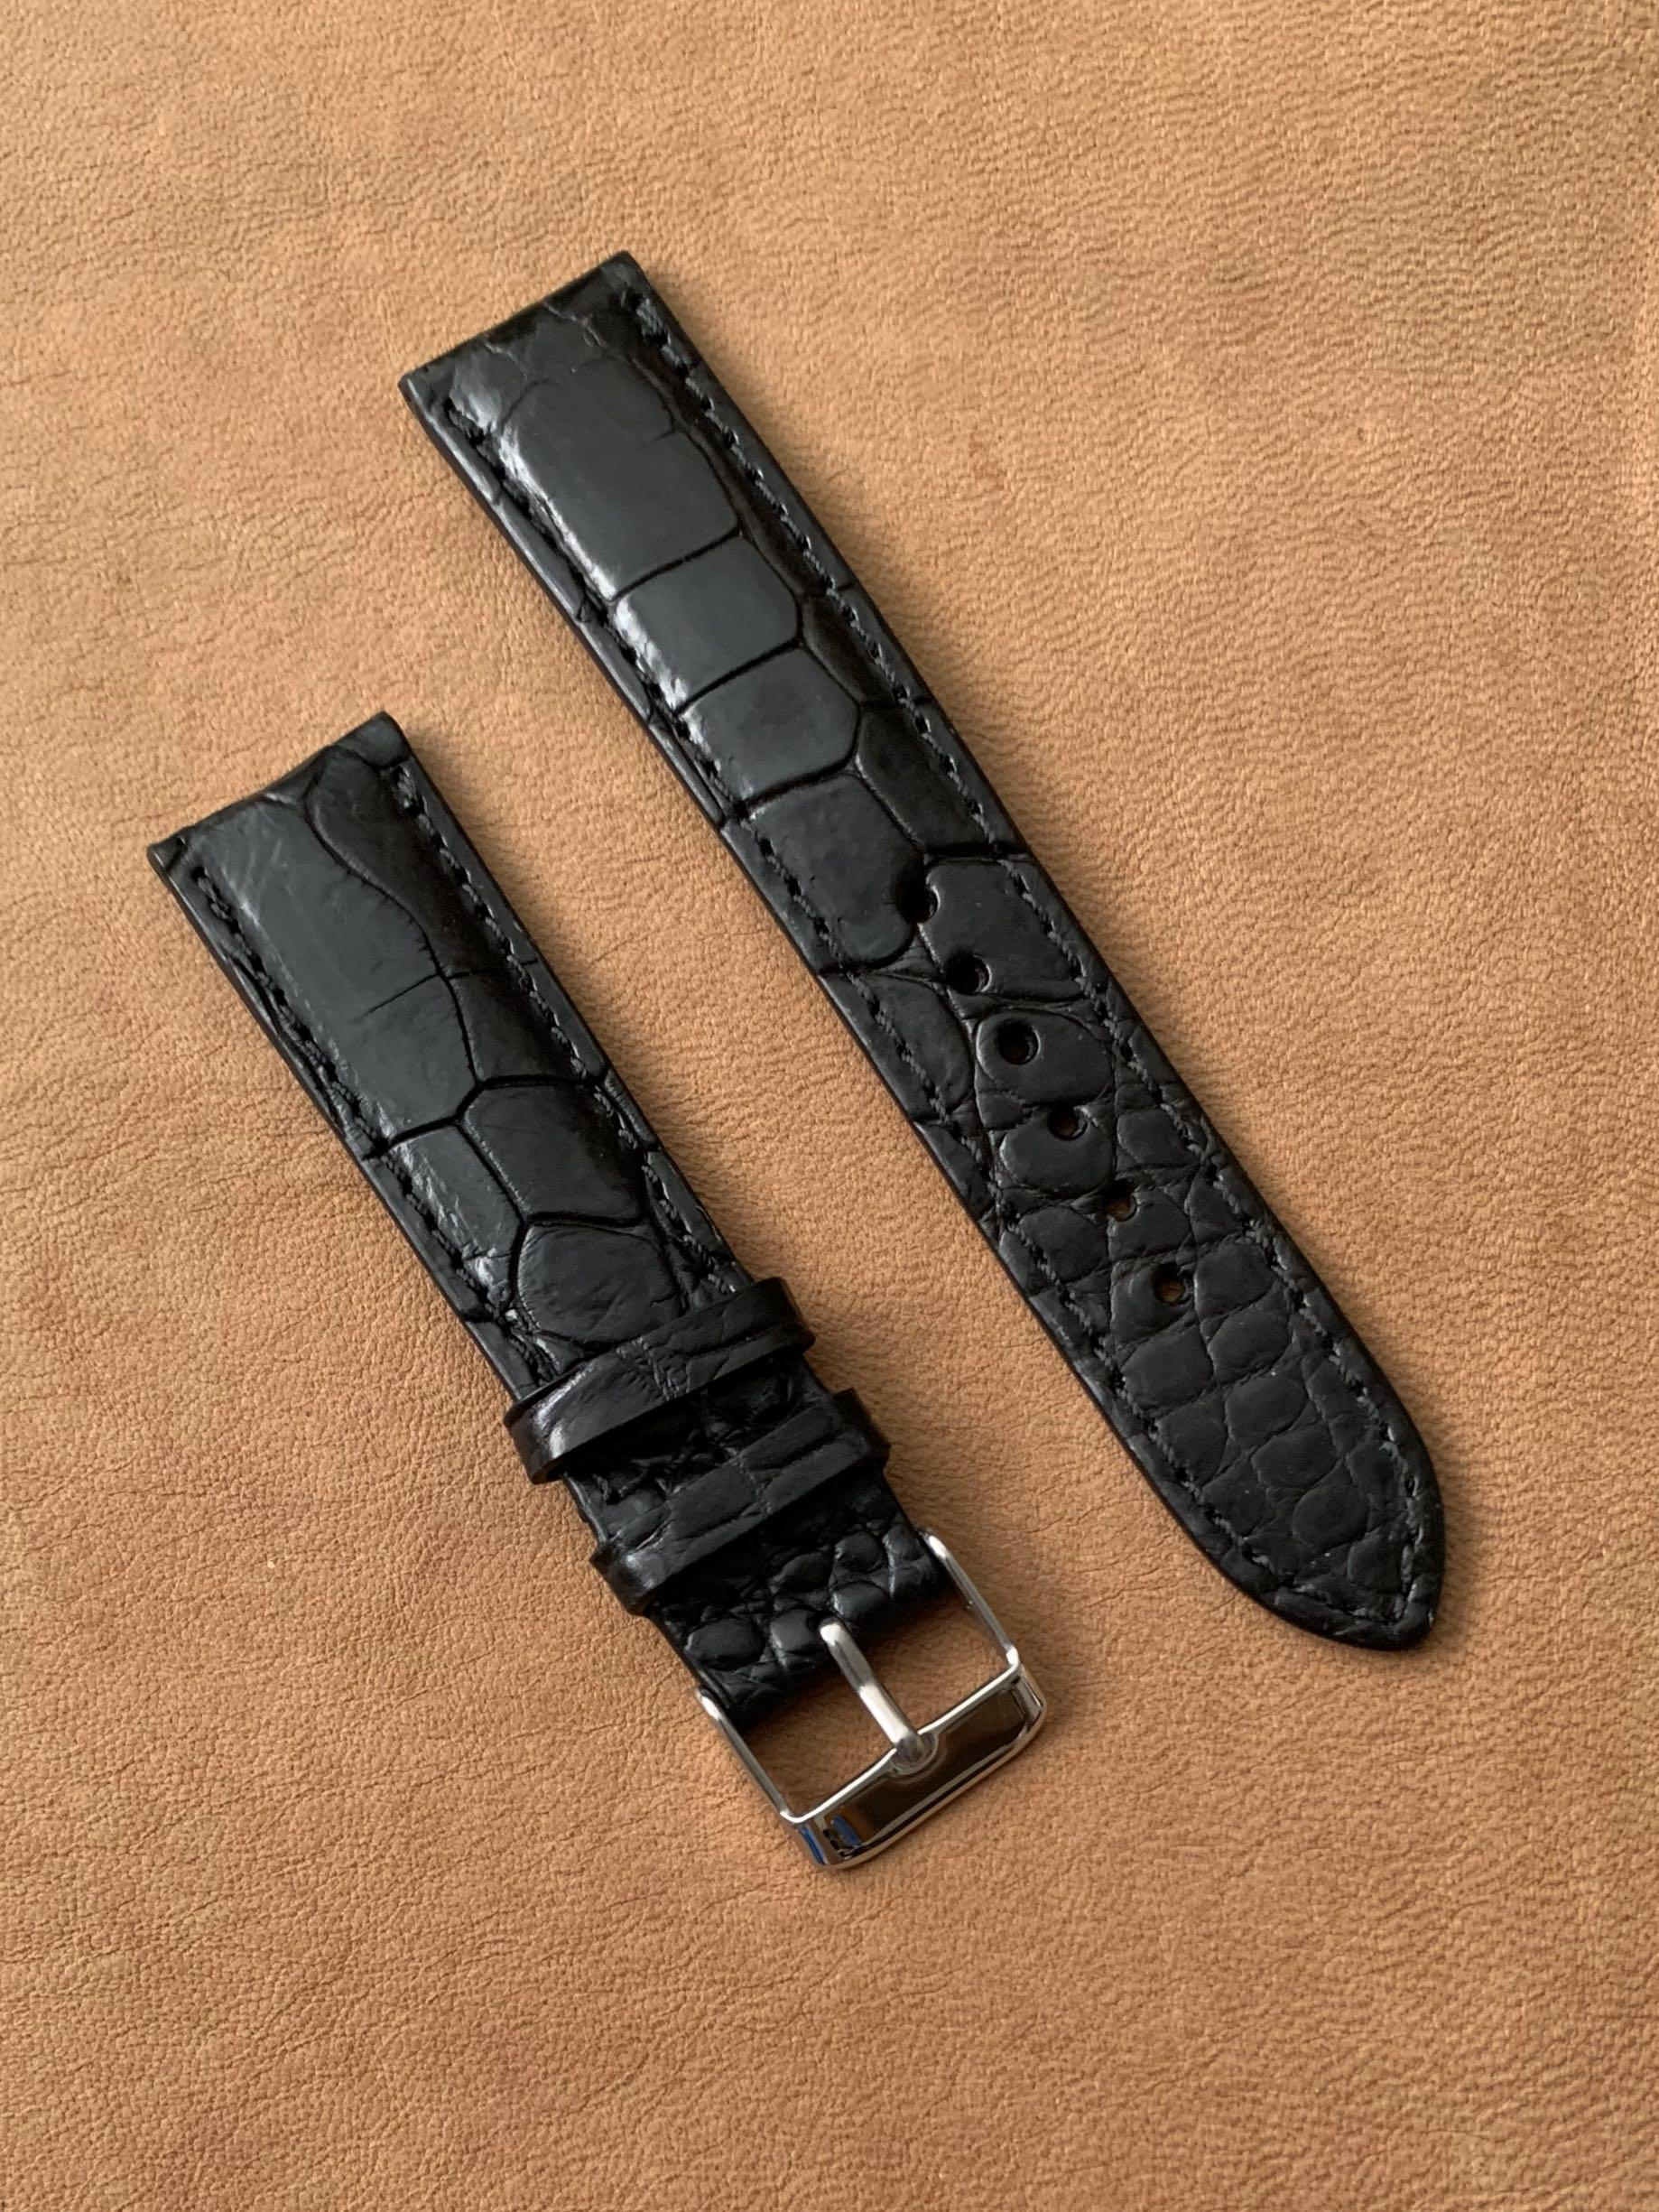 20mm/18mm Black Crocodile 🐊 Alligator Watch Strap  (multi-tiled scales - one of a kind 👍🏻😊, once sold no more) Standard Length- L:120mm S:75mm